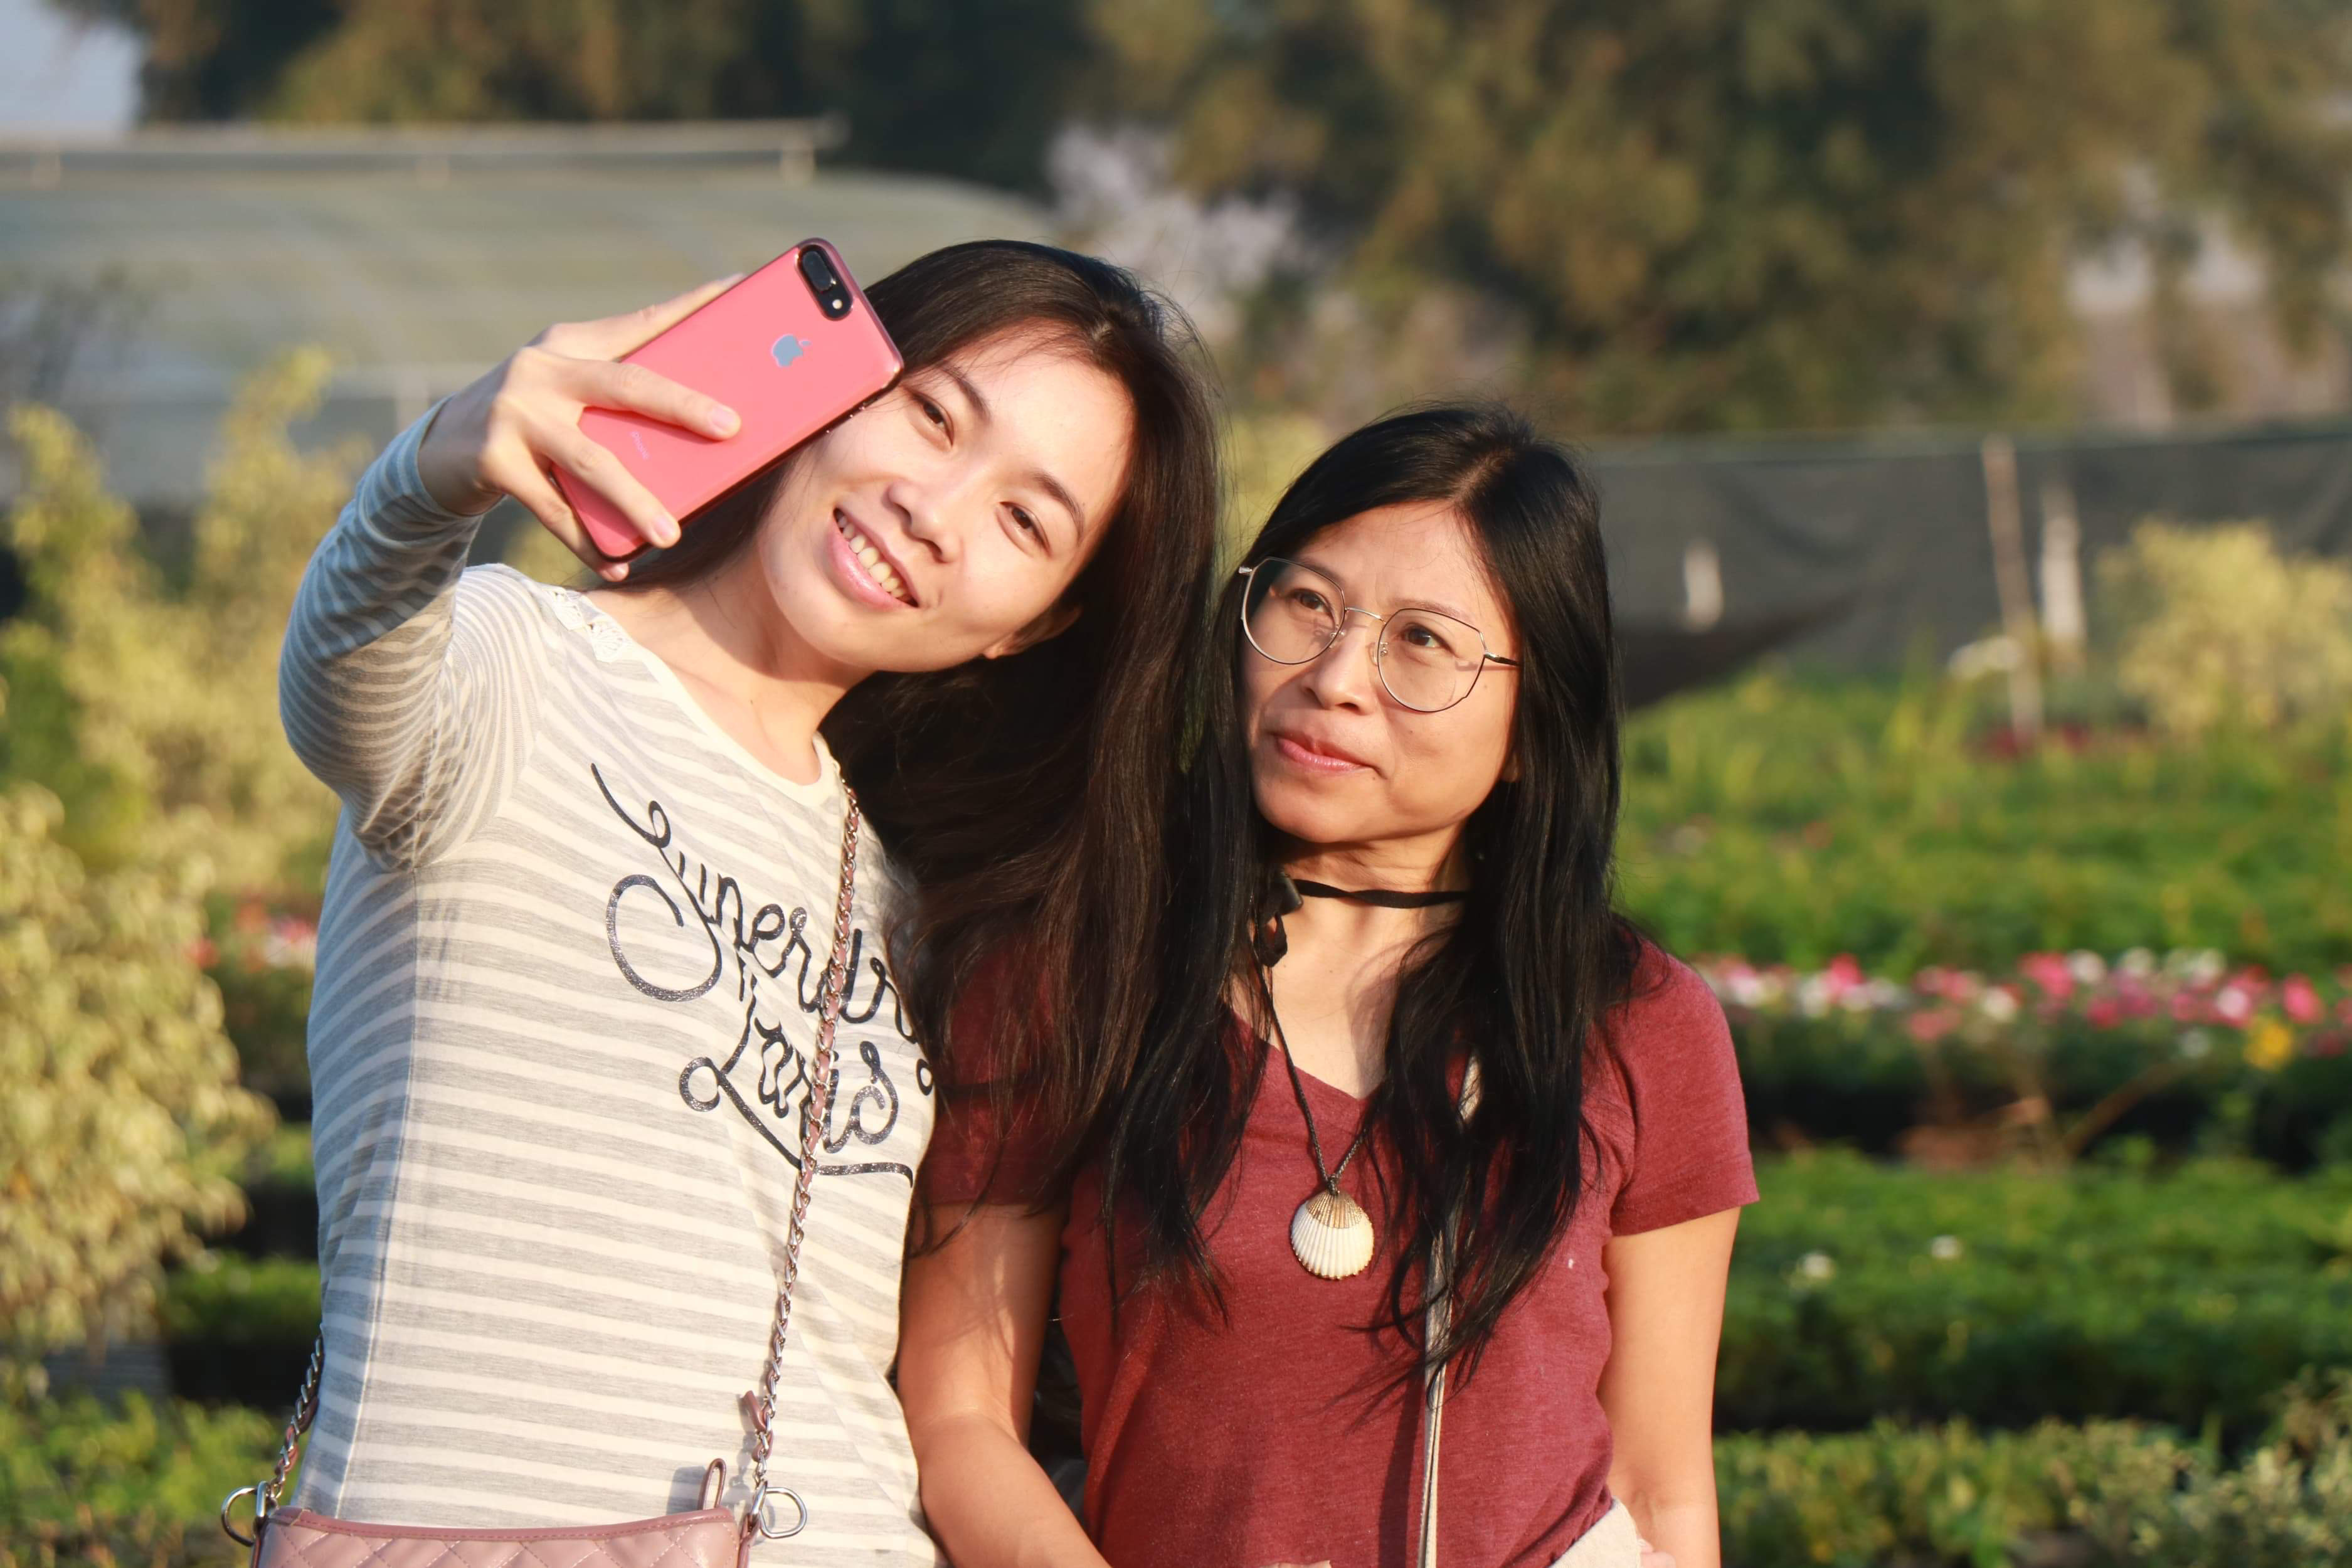 Women take a selfie at the Tan Quy Dong flower neighborhood in Sa Dec City, Dong Thap Province, southern Vietnam. Photo: Hong Van